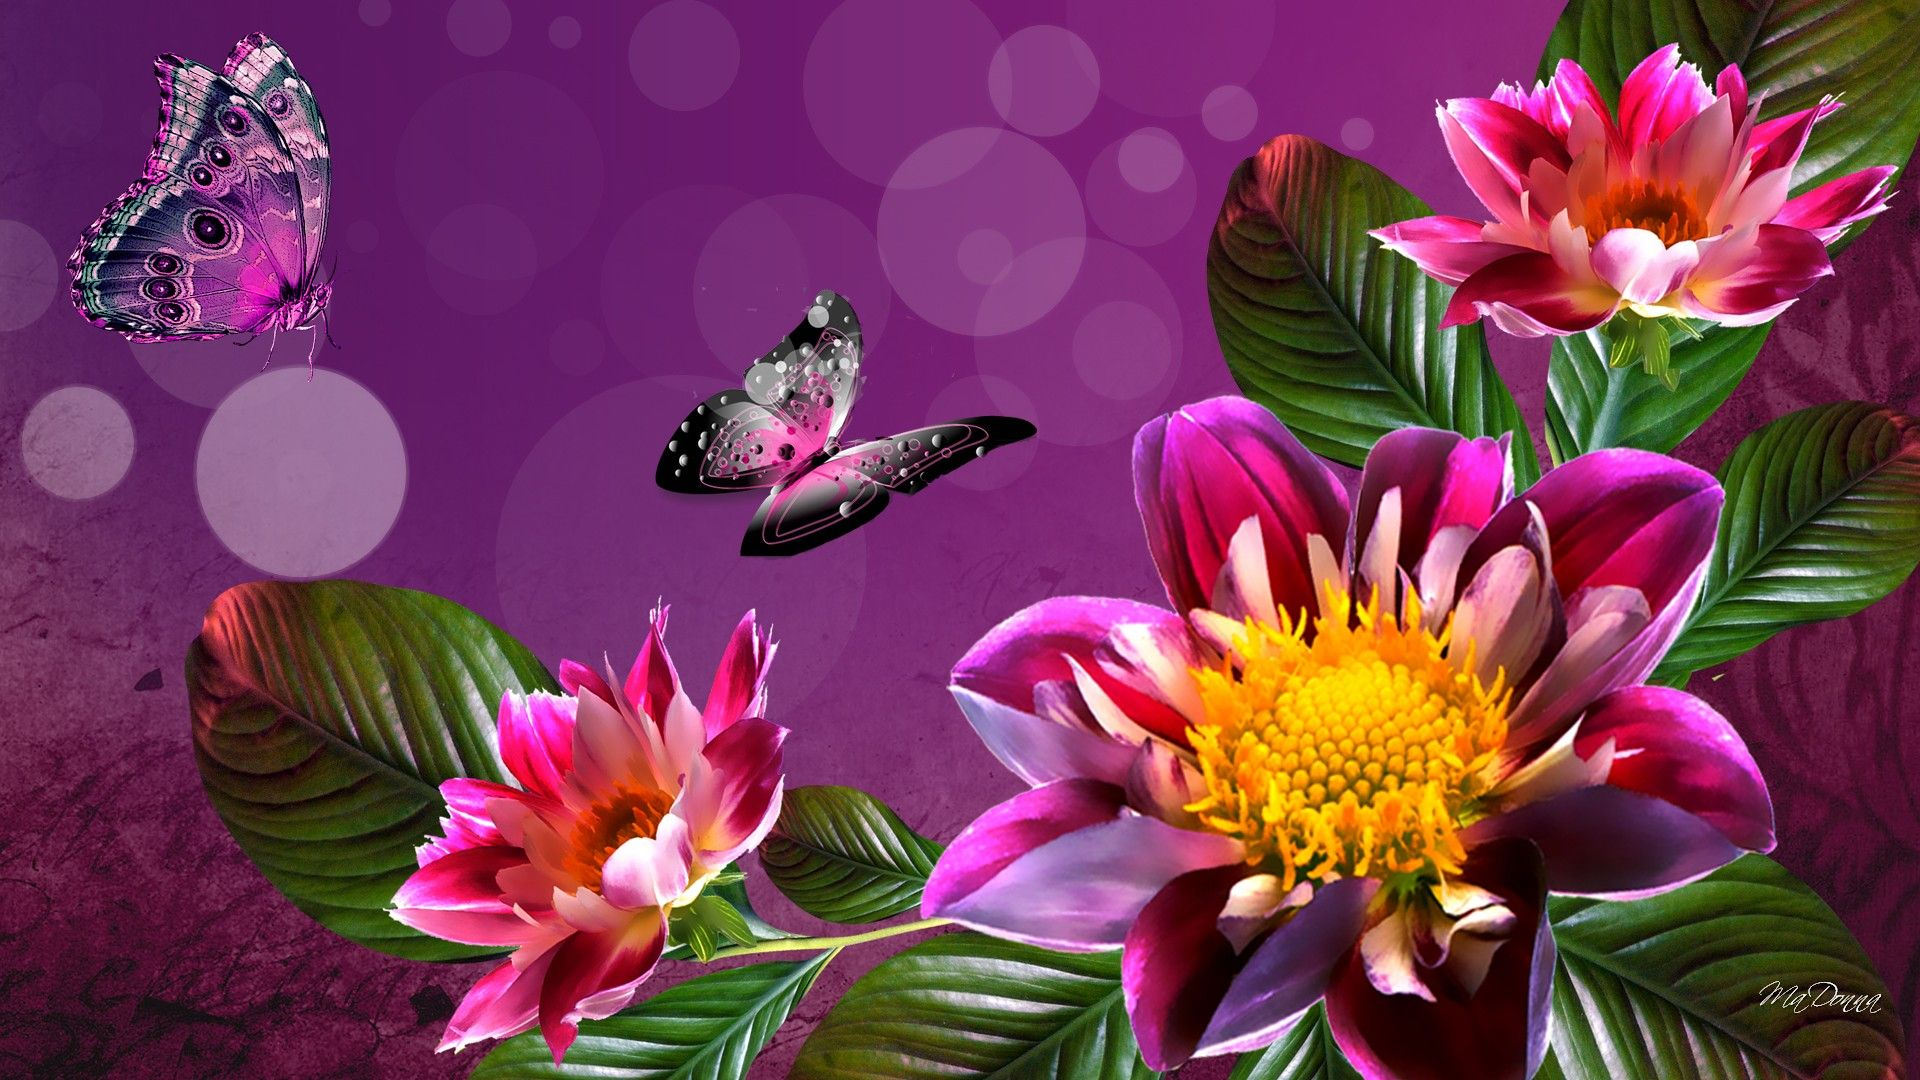 Download Hd Flower Background Wallpaper High Resolution Desktop ...